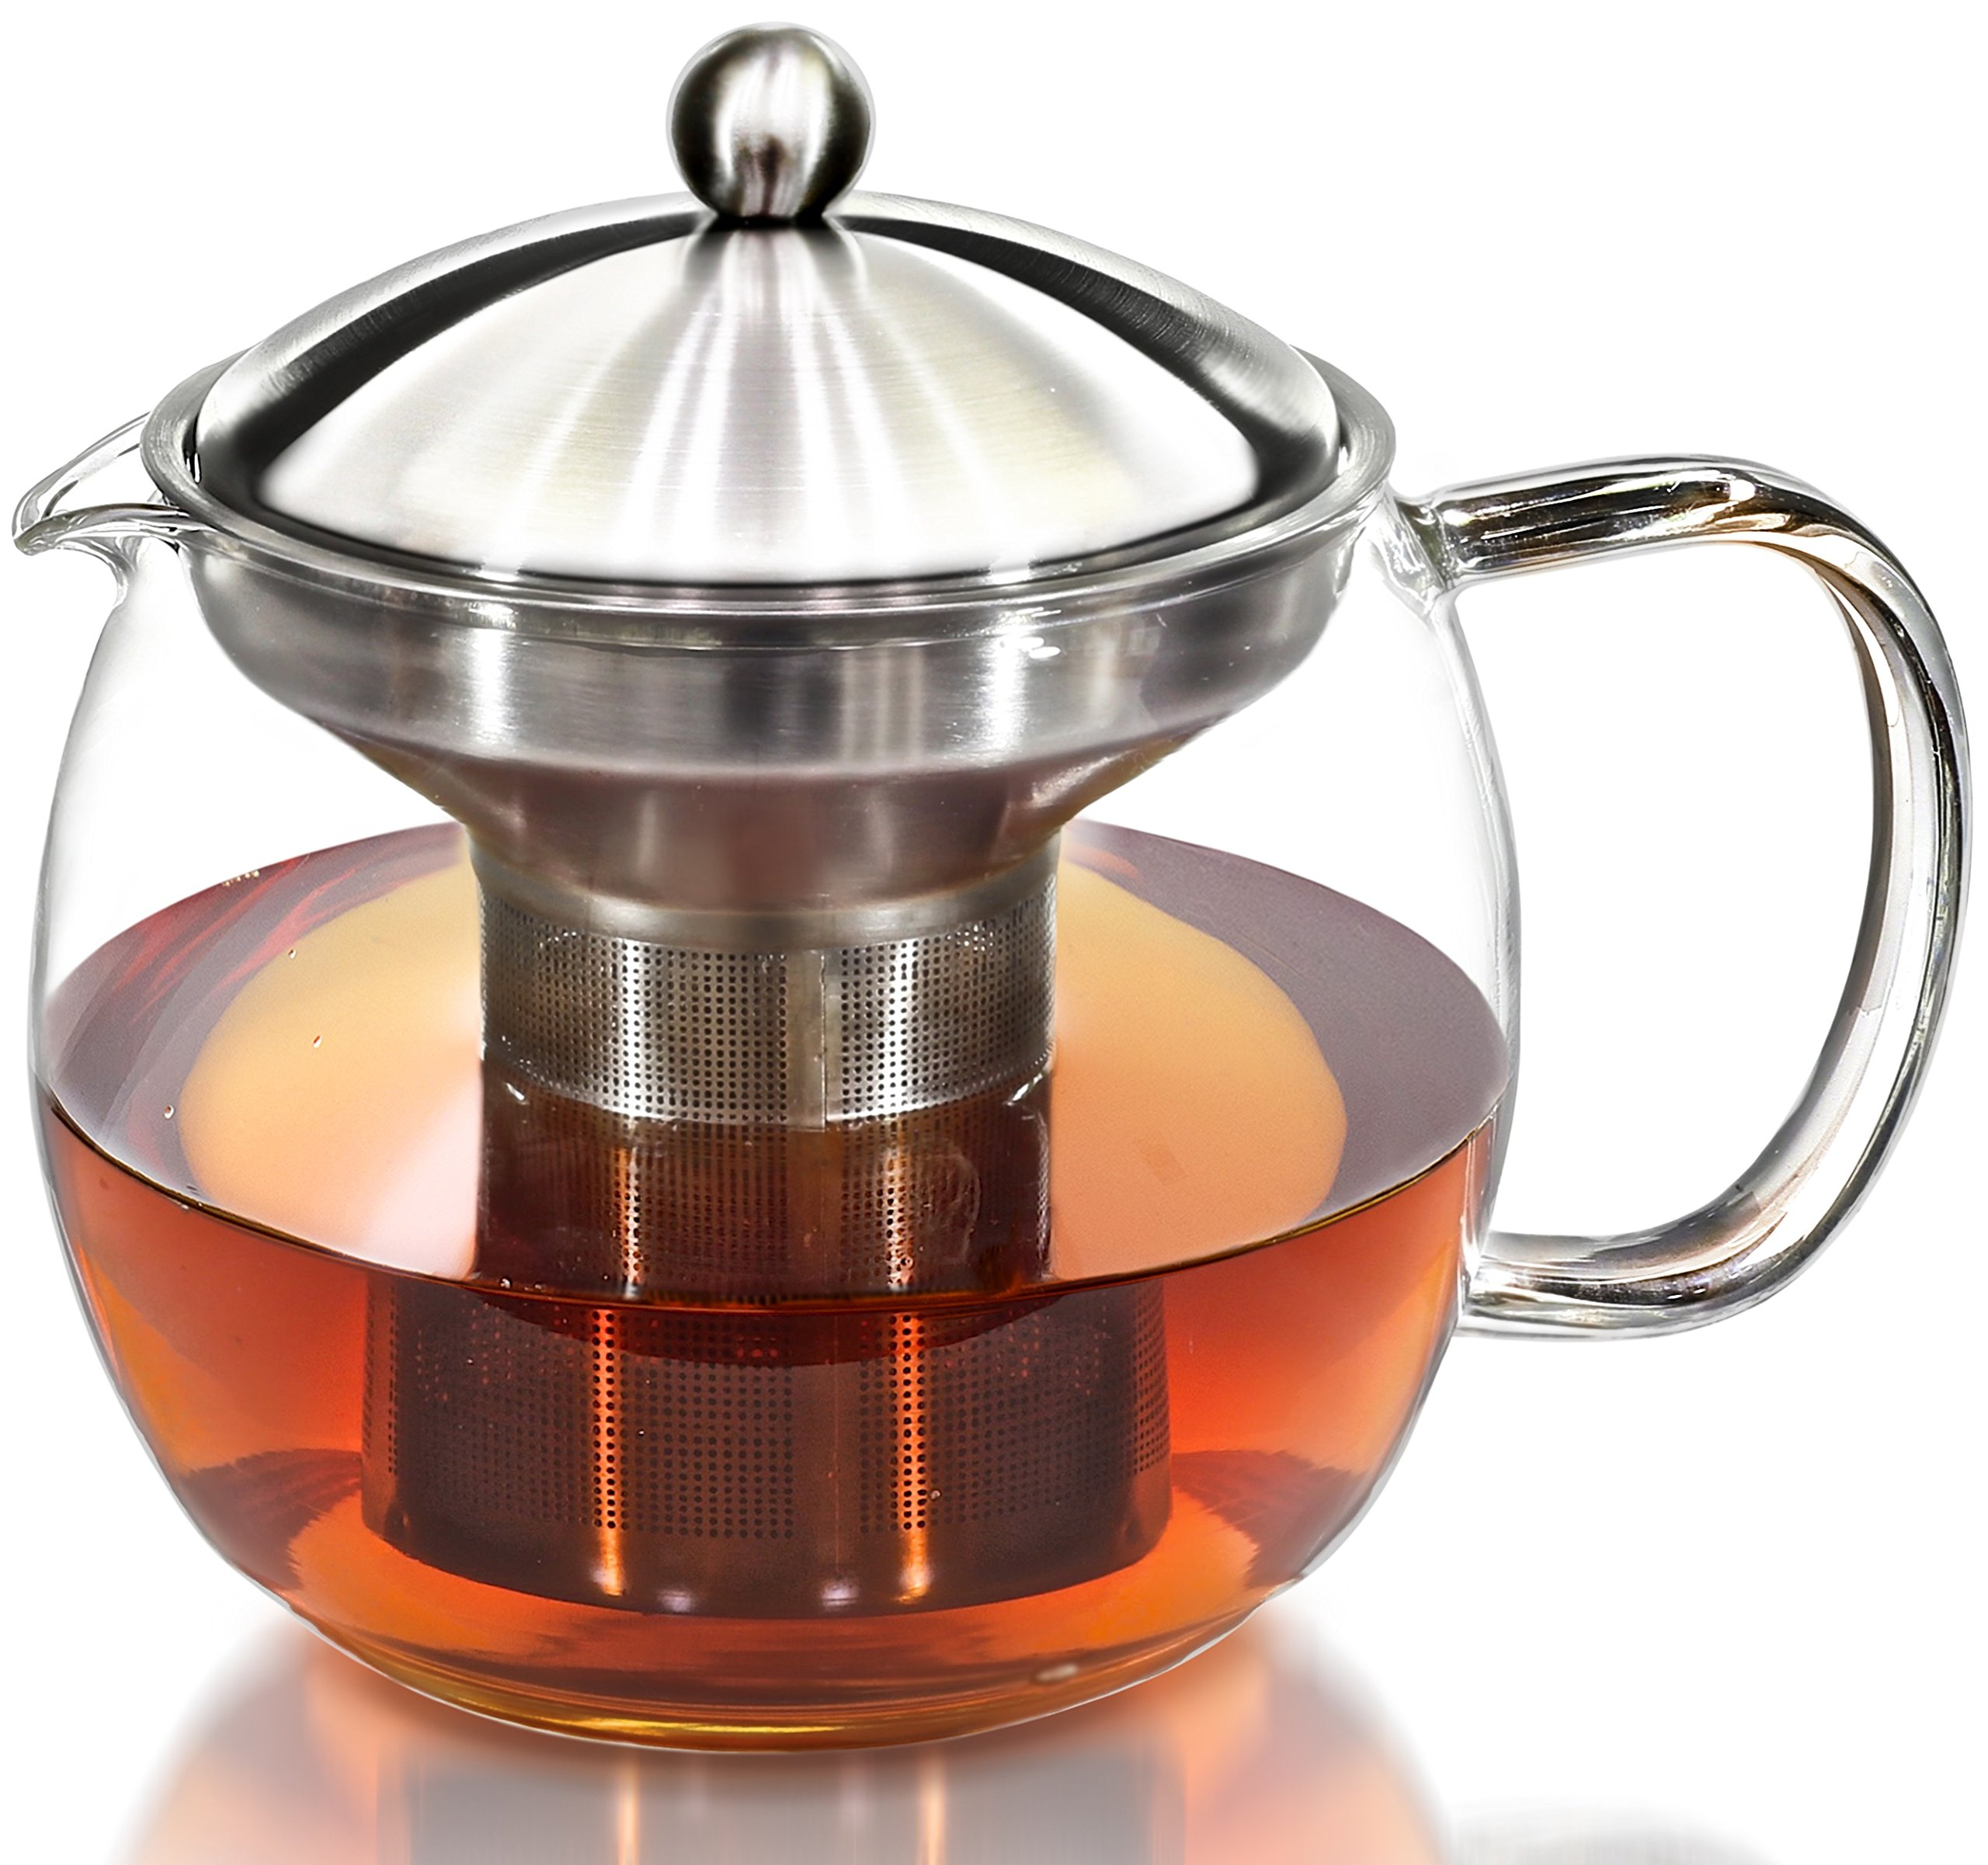 Teapot Kettle with Warmer - Tea Pot and Tea Infuser Set - Glass Tea Maker Infusers Holds 3-4 Cups Loose Leaf Iced Blooming or Flowering Tea Filter- Teapots Kettles Tea Strainer Steeper Tea Pots by Willow & Everett